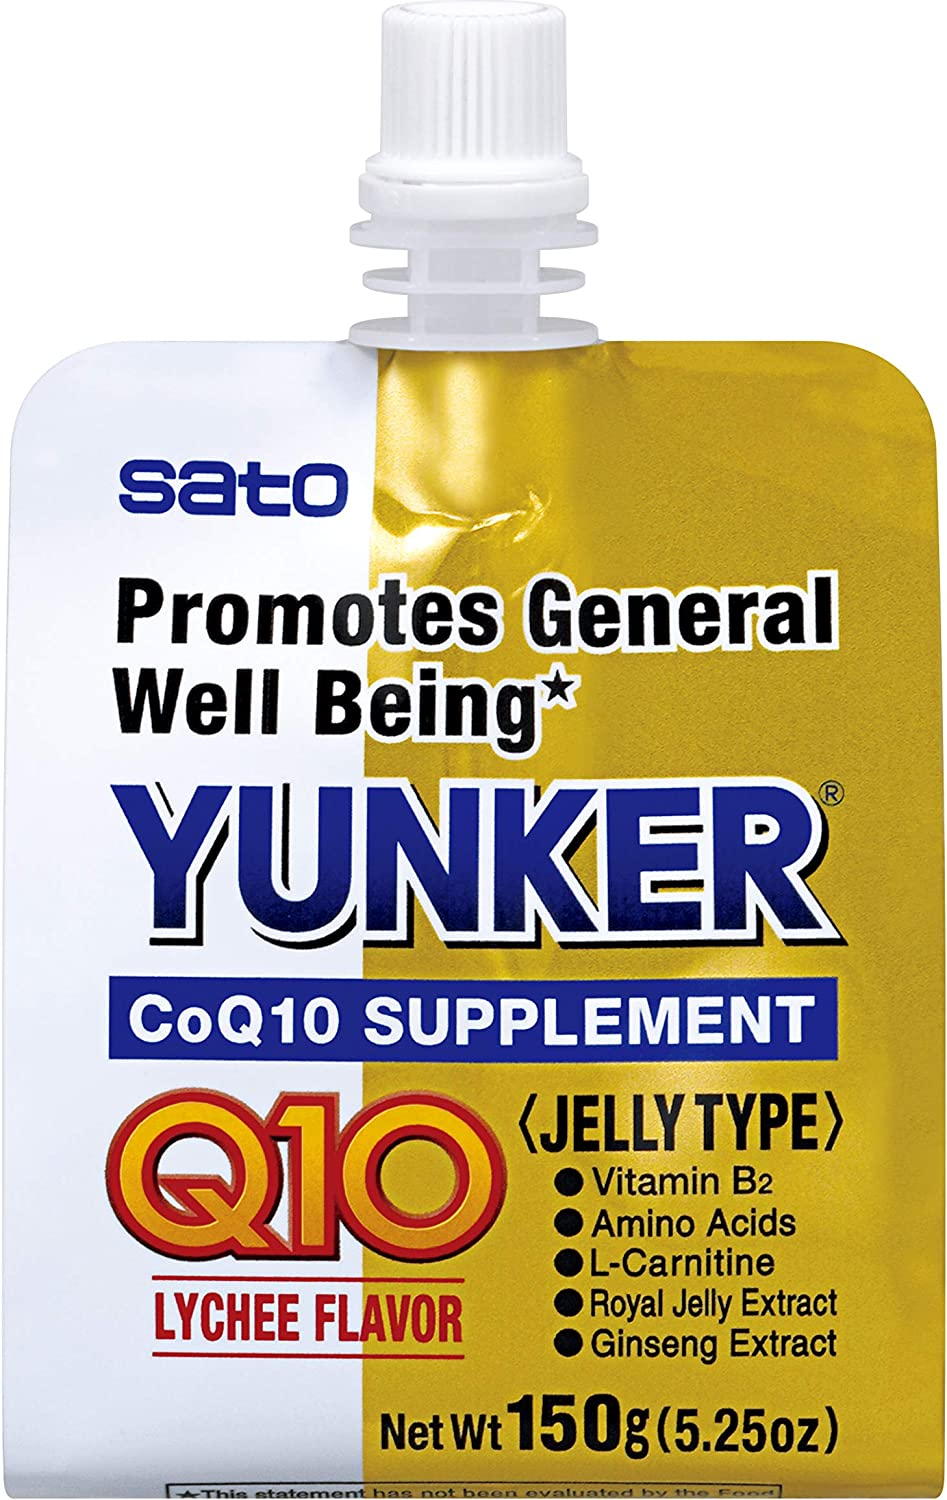 Yunker Health Coq10 Supplement Jelly Type, 5.29 Fl Ounce